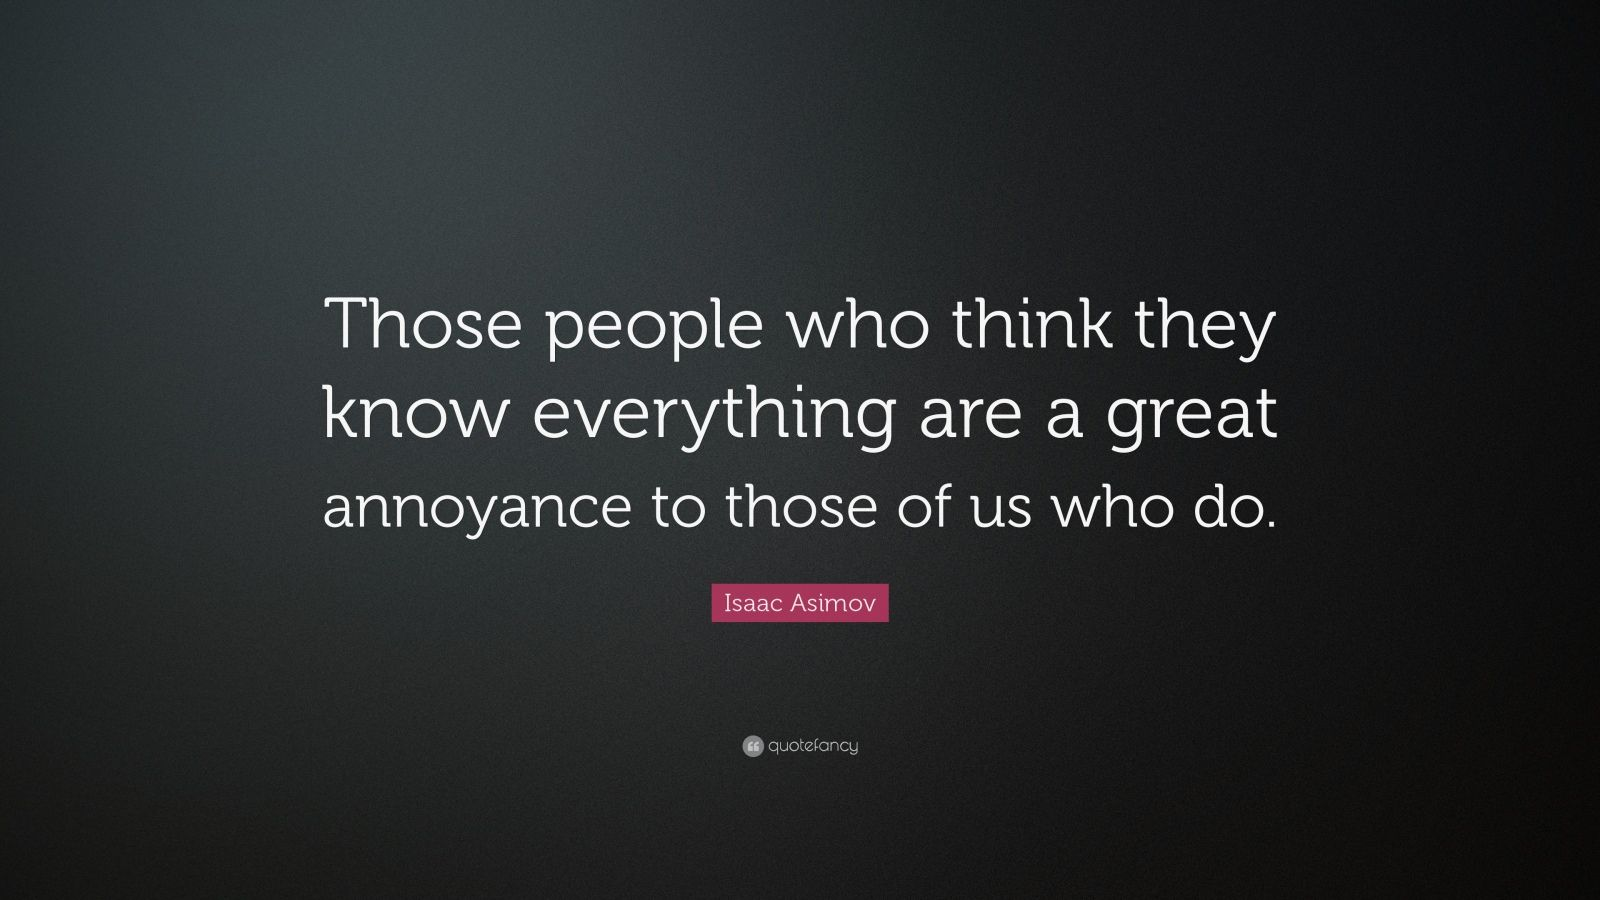 """Isaac Asimov Quote: """"Those people who think they know everything are a great annoyance to those of us who do."""""""